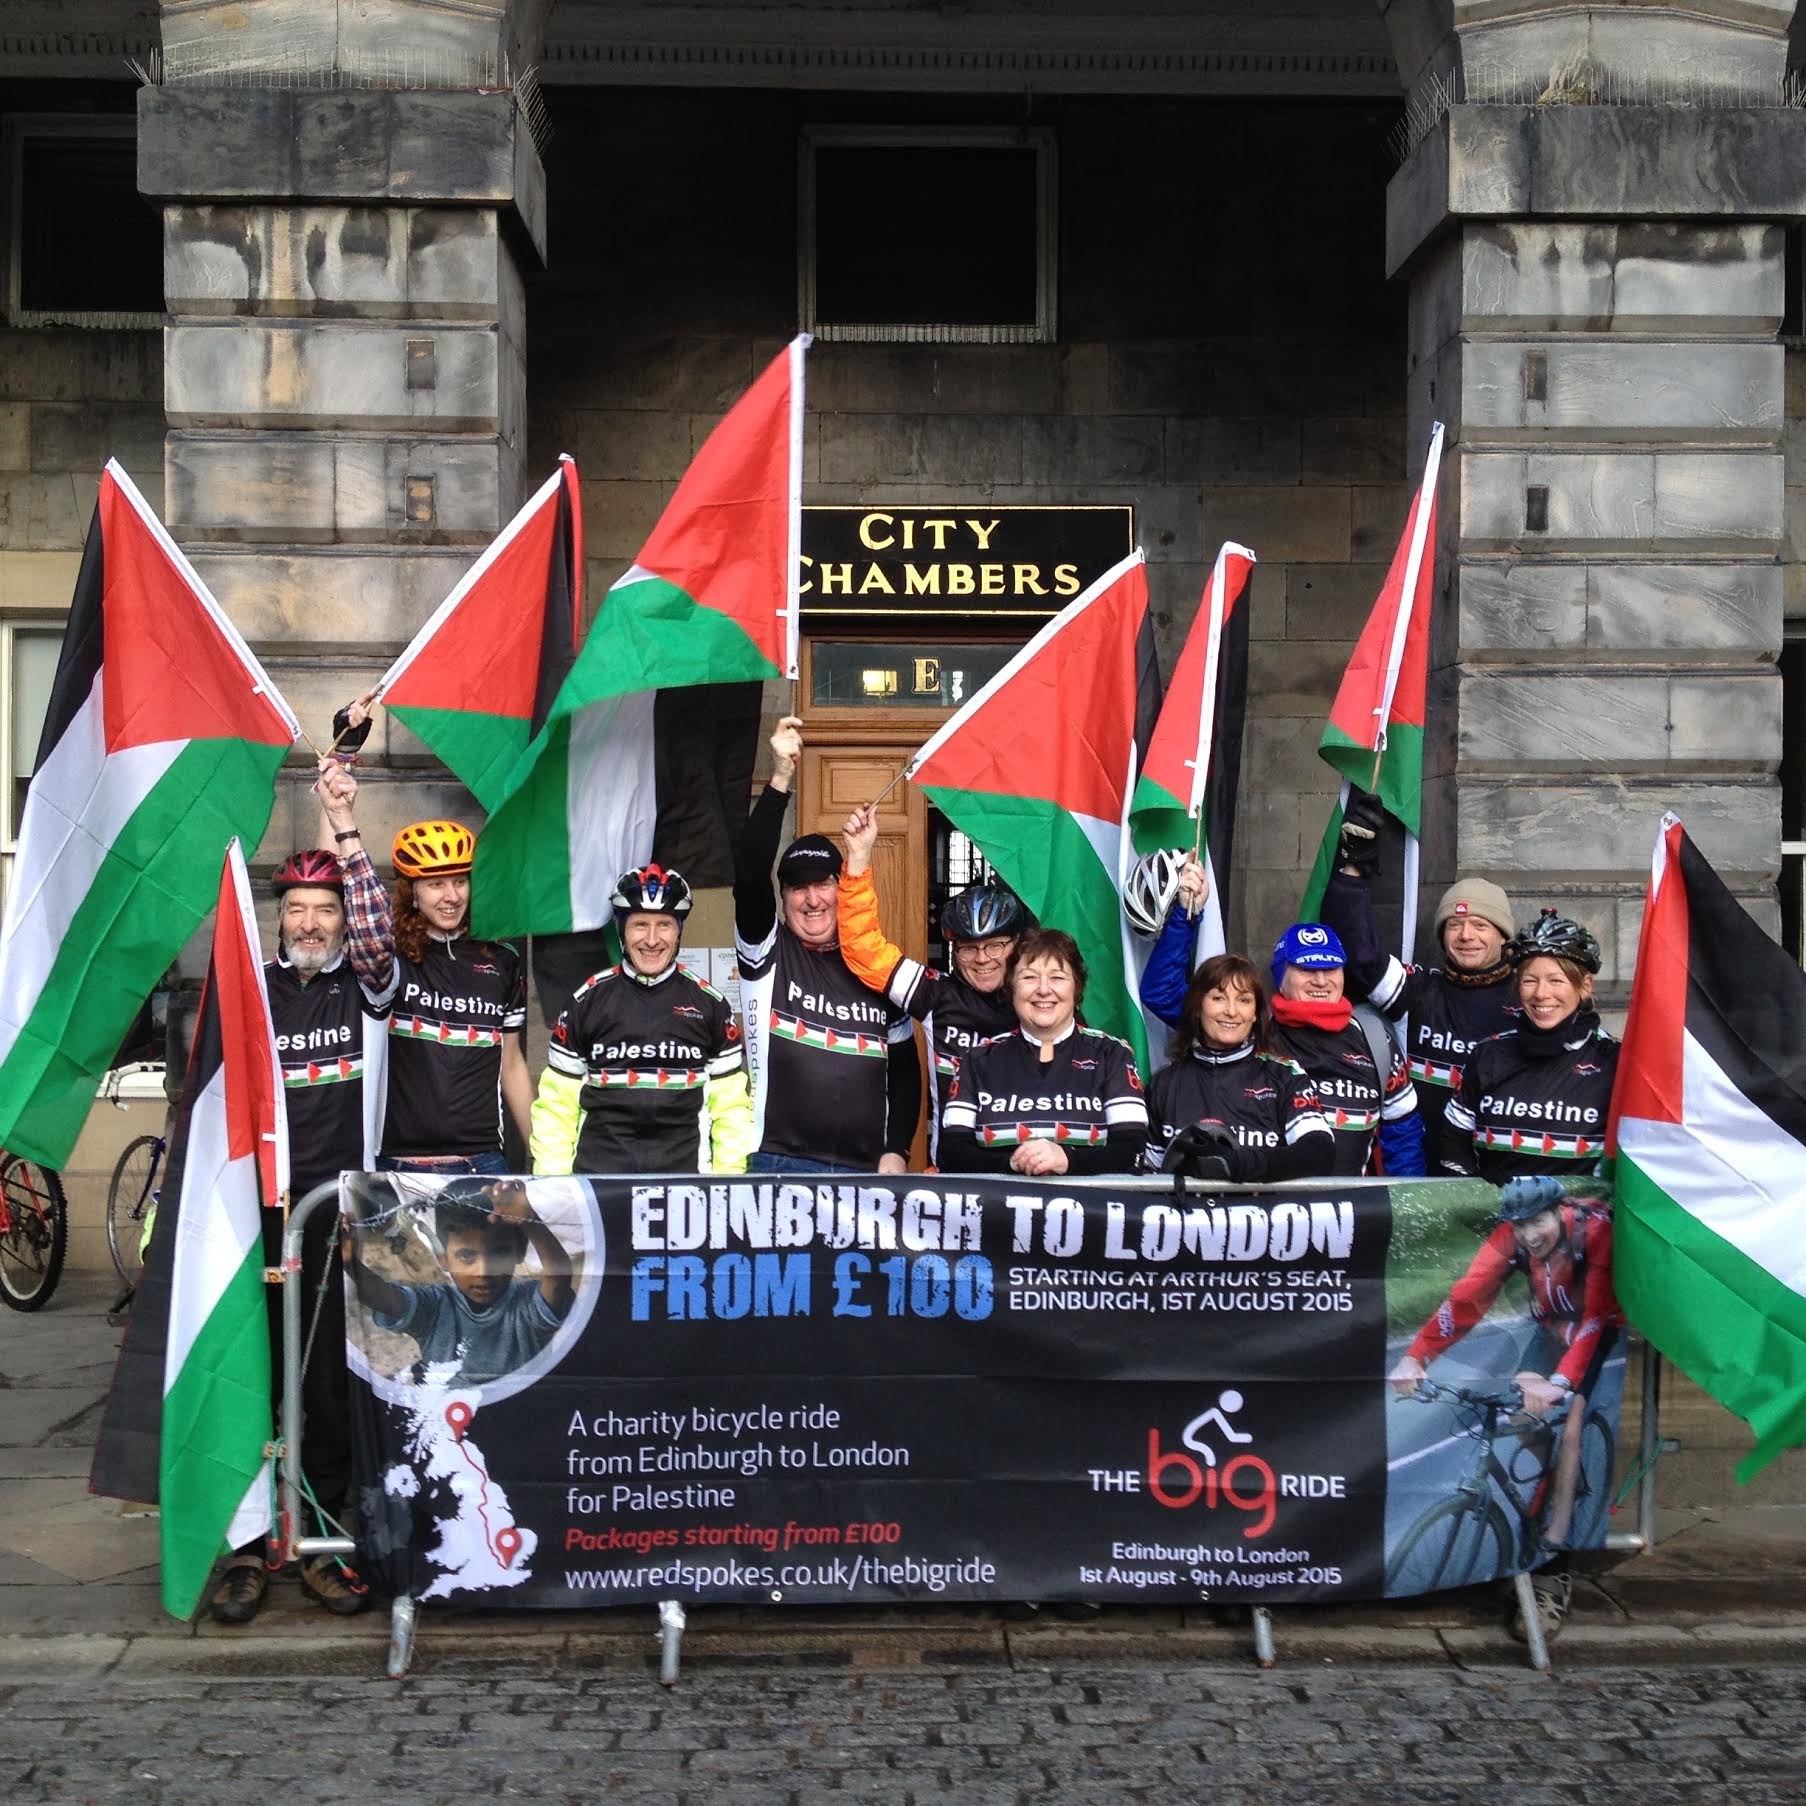 RT @cyclethebigride: @frankieboyle Frankie, can you please help us - take a look - http://t.co/0InAtqbTwi for #gaza http://t.co/0InAtqbTwi …